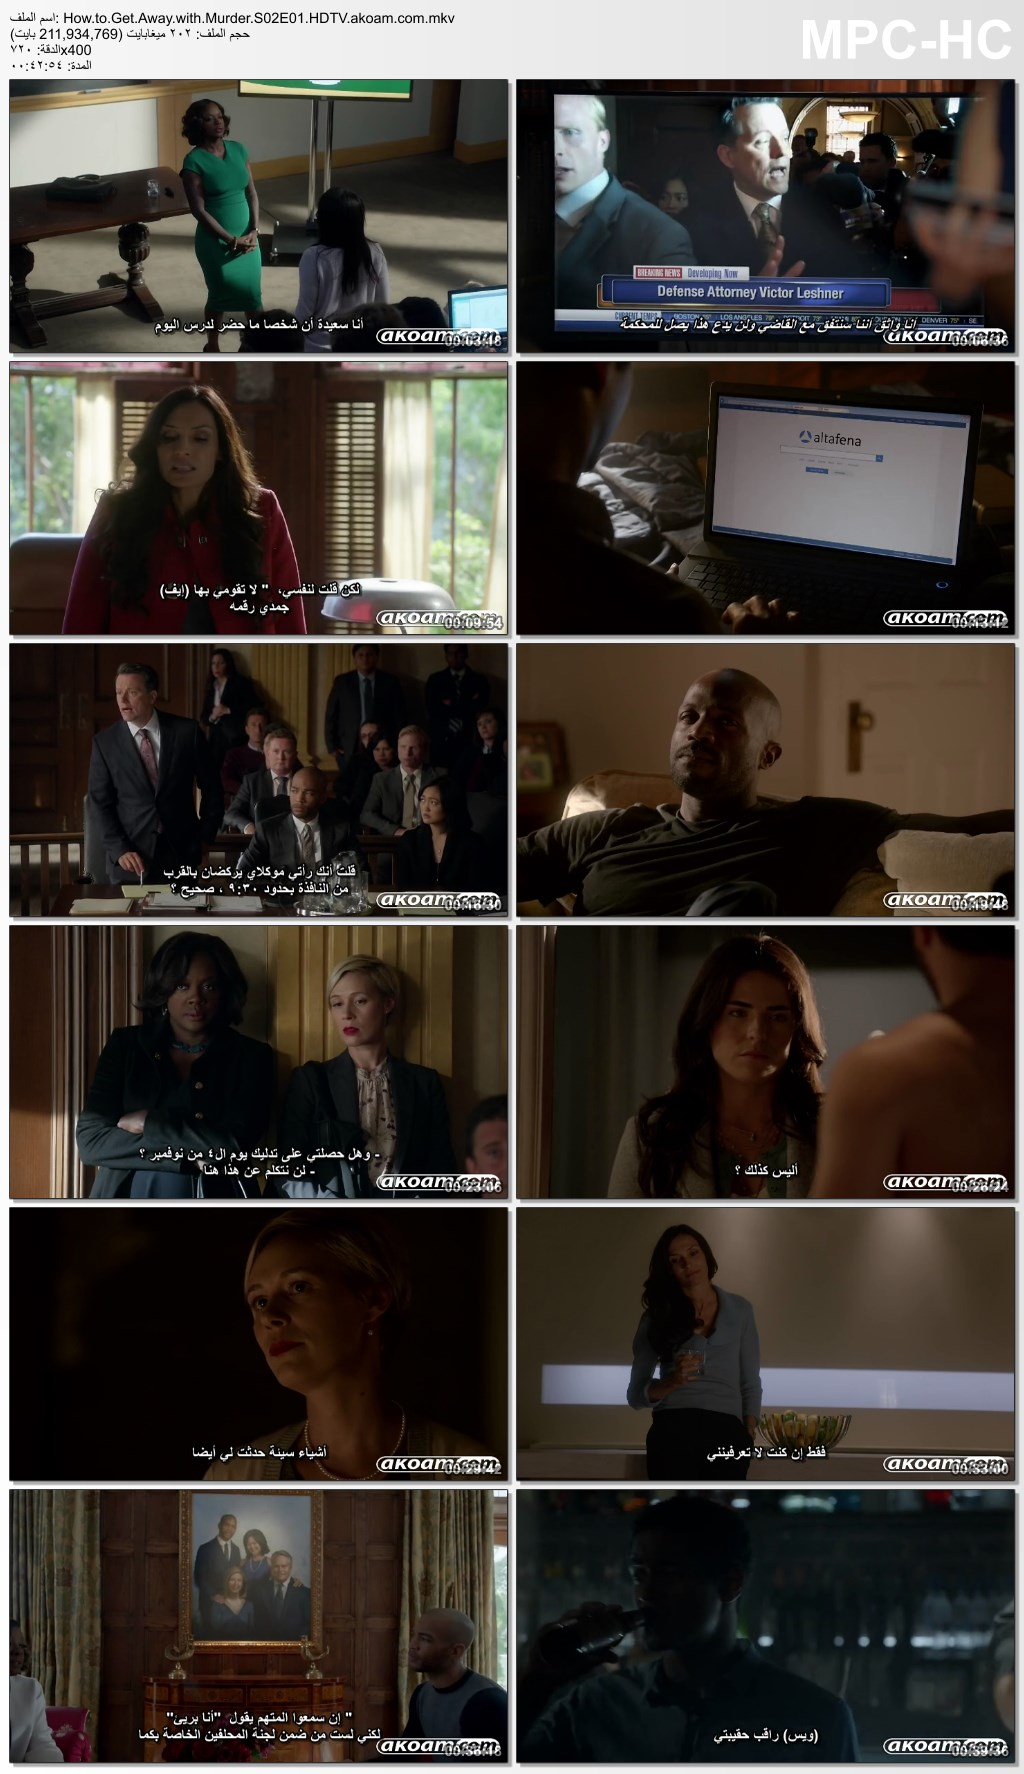 How to Get Away with Murder,How to Get Away with Murder 2015,الاكشن,الجريمة,الغموض,الدراما,How to Get Away with Murder - Second Season